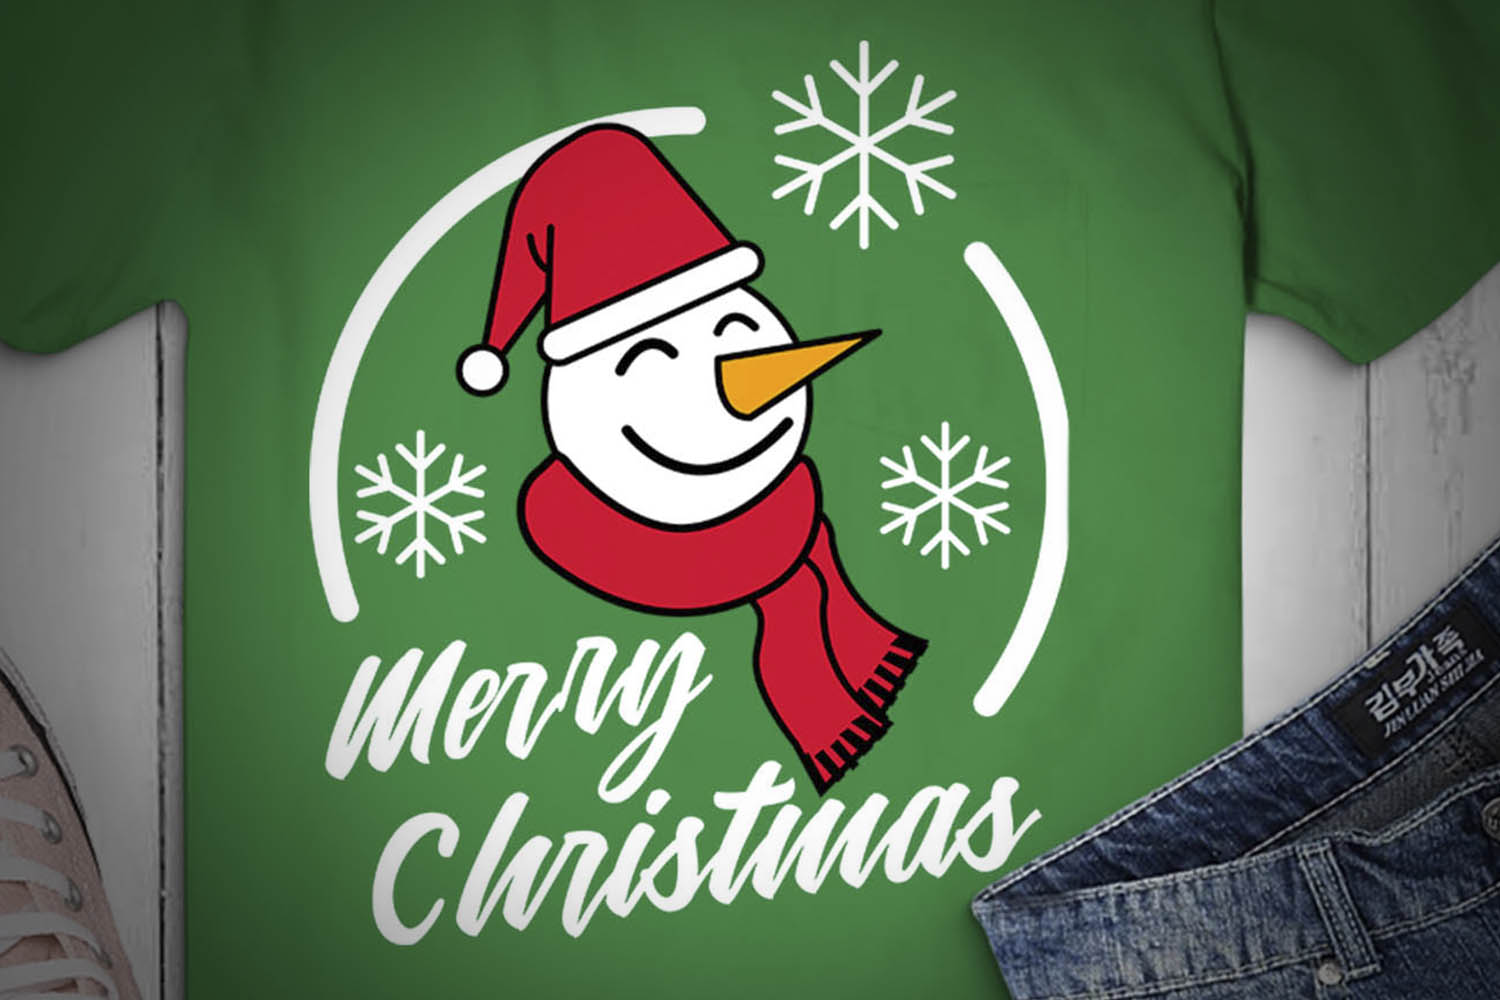 Merry Christmas SVG, Snowman SVG, Winter SVG, Carrots example image 2